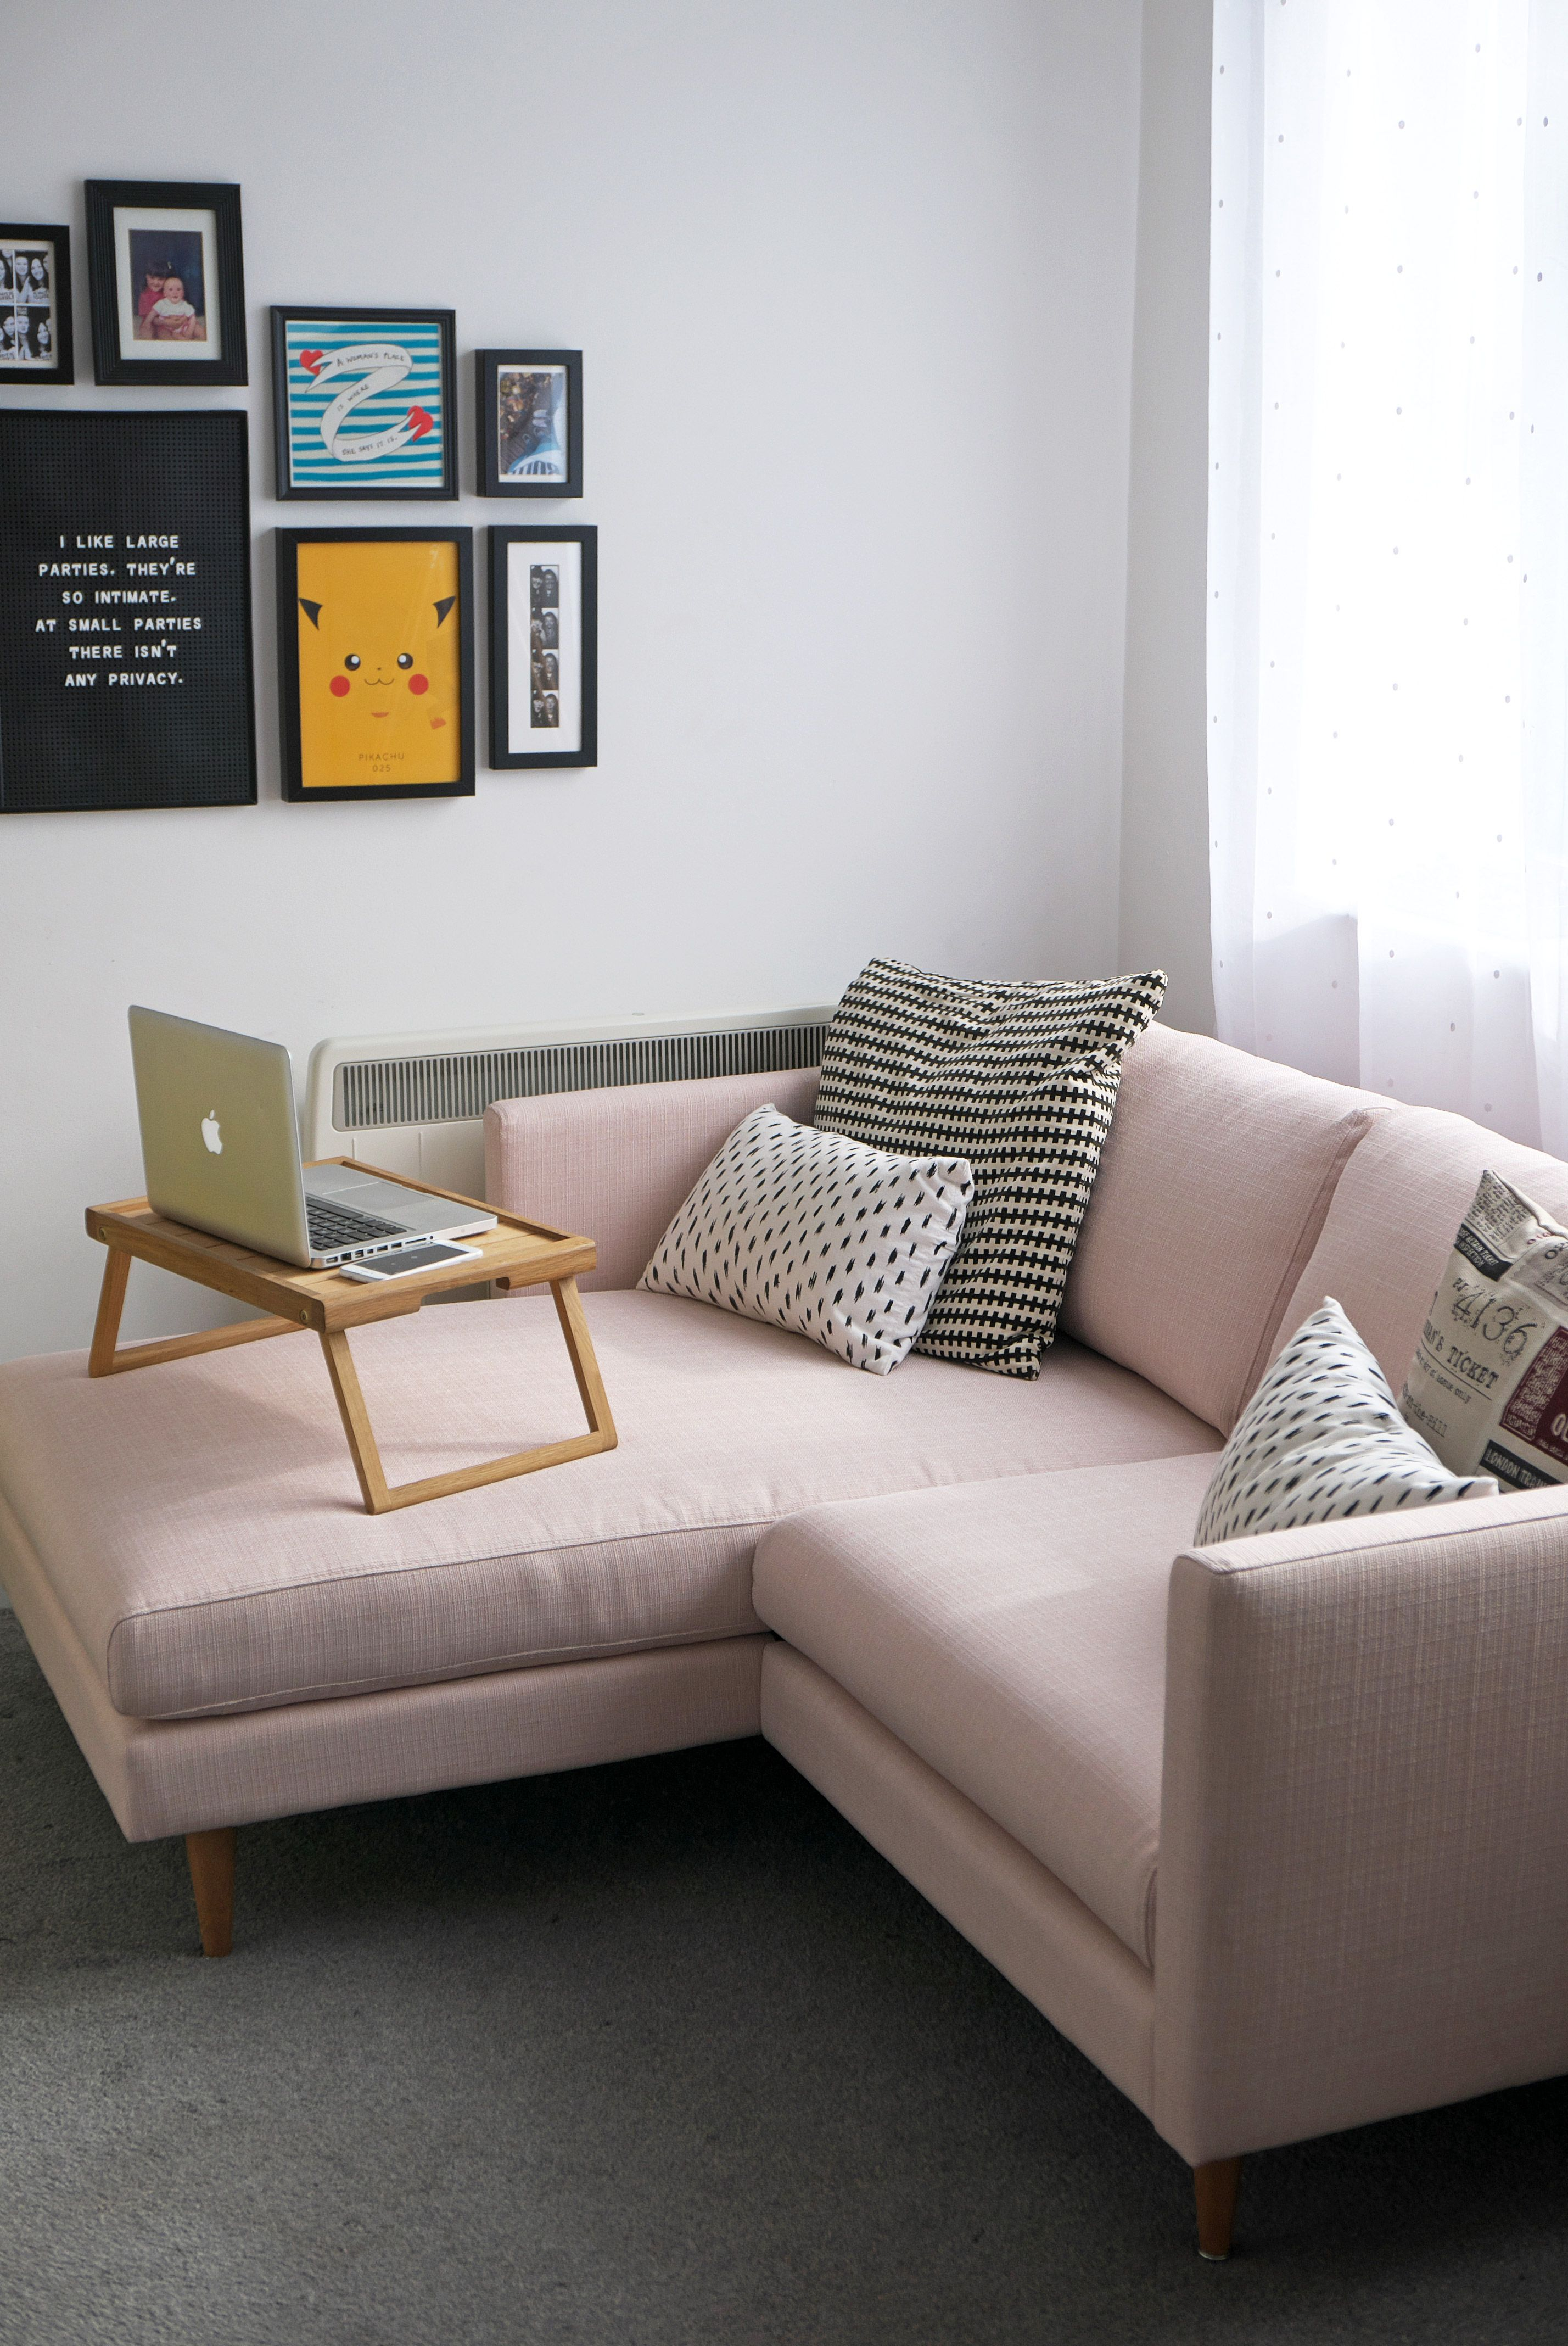 London Studio Flat Tour Featuring A Pink Sofa Adventuring And Things Pink Sofa Corner Sofa Interior Design Sofa